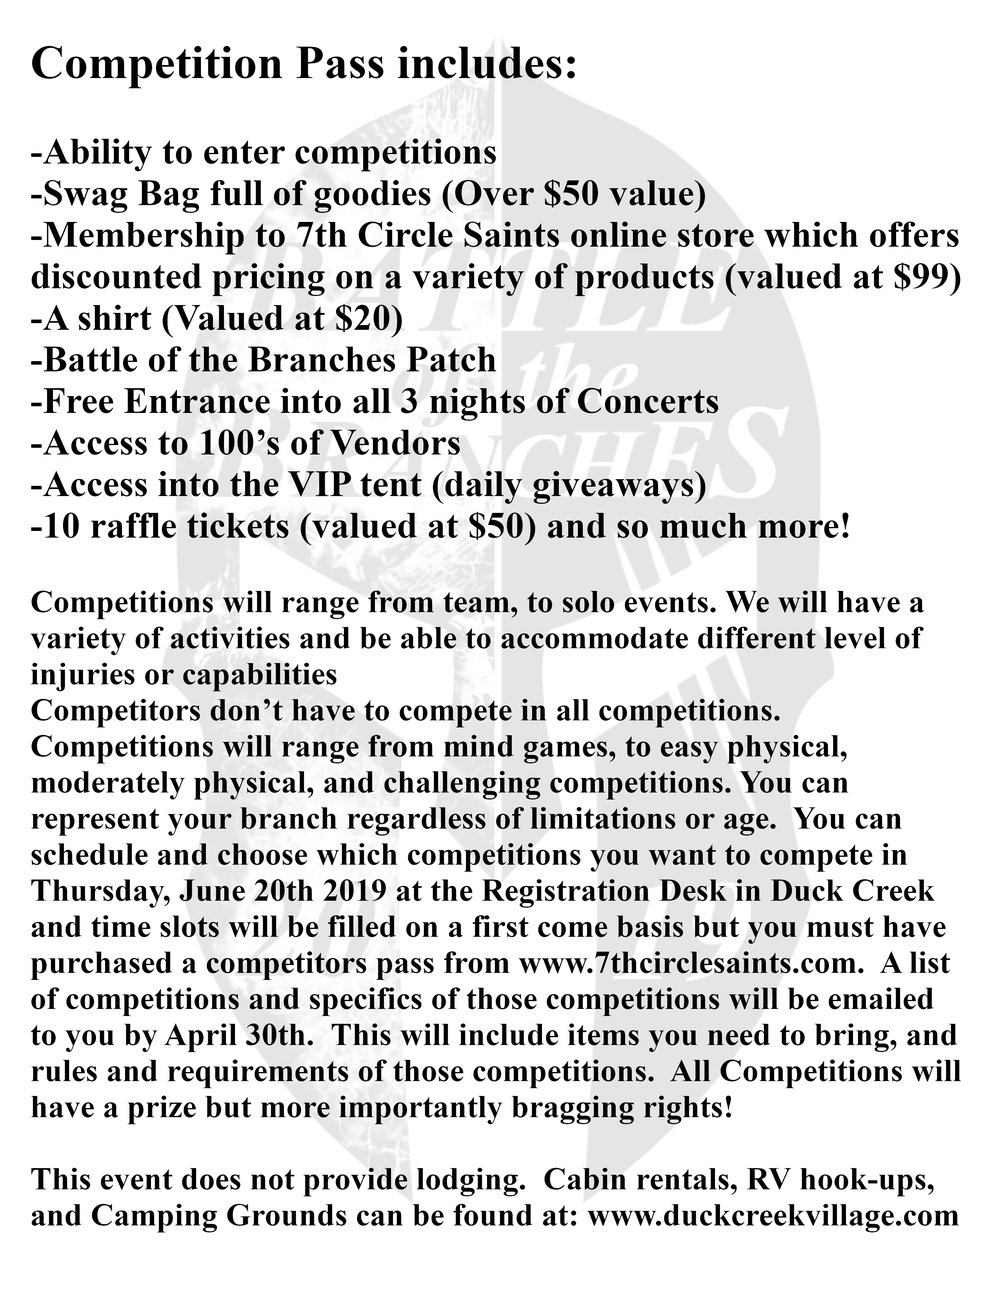 Competitor pass includes page.jpg